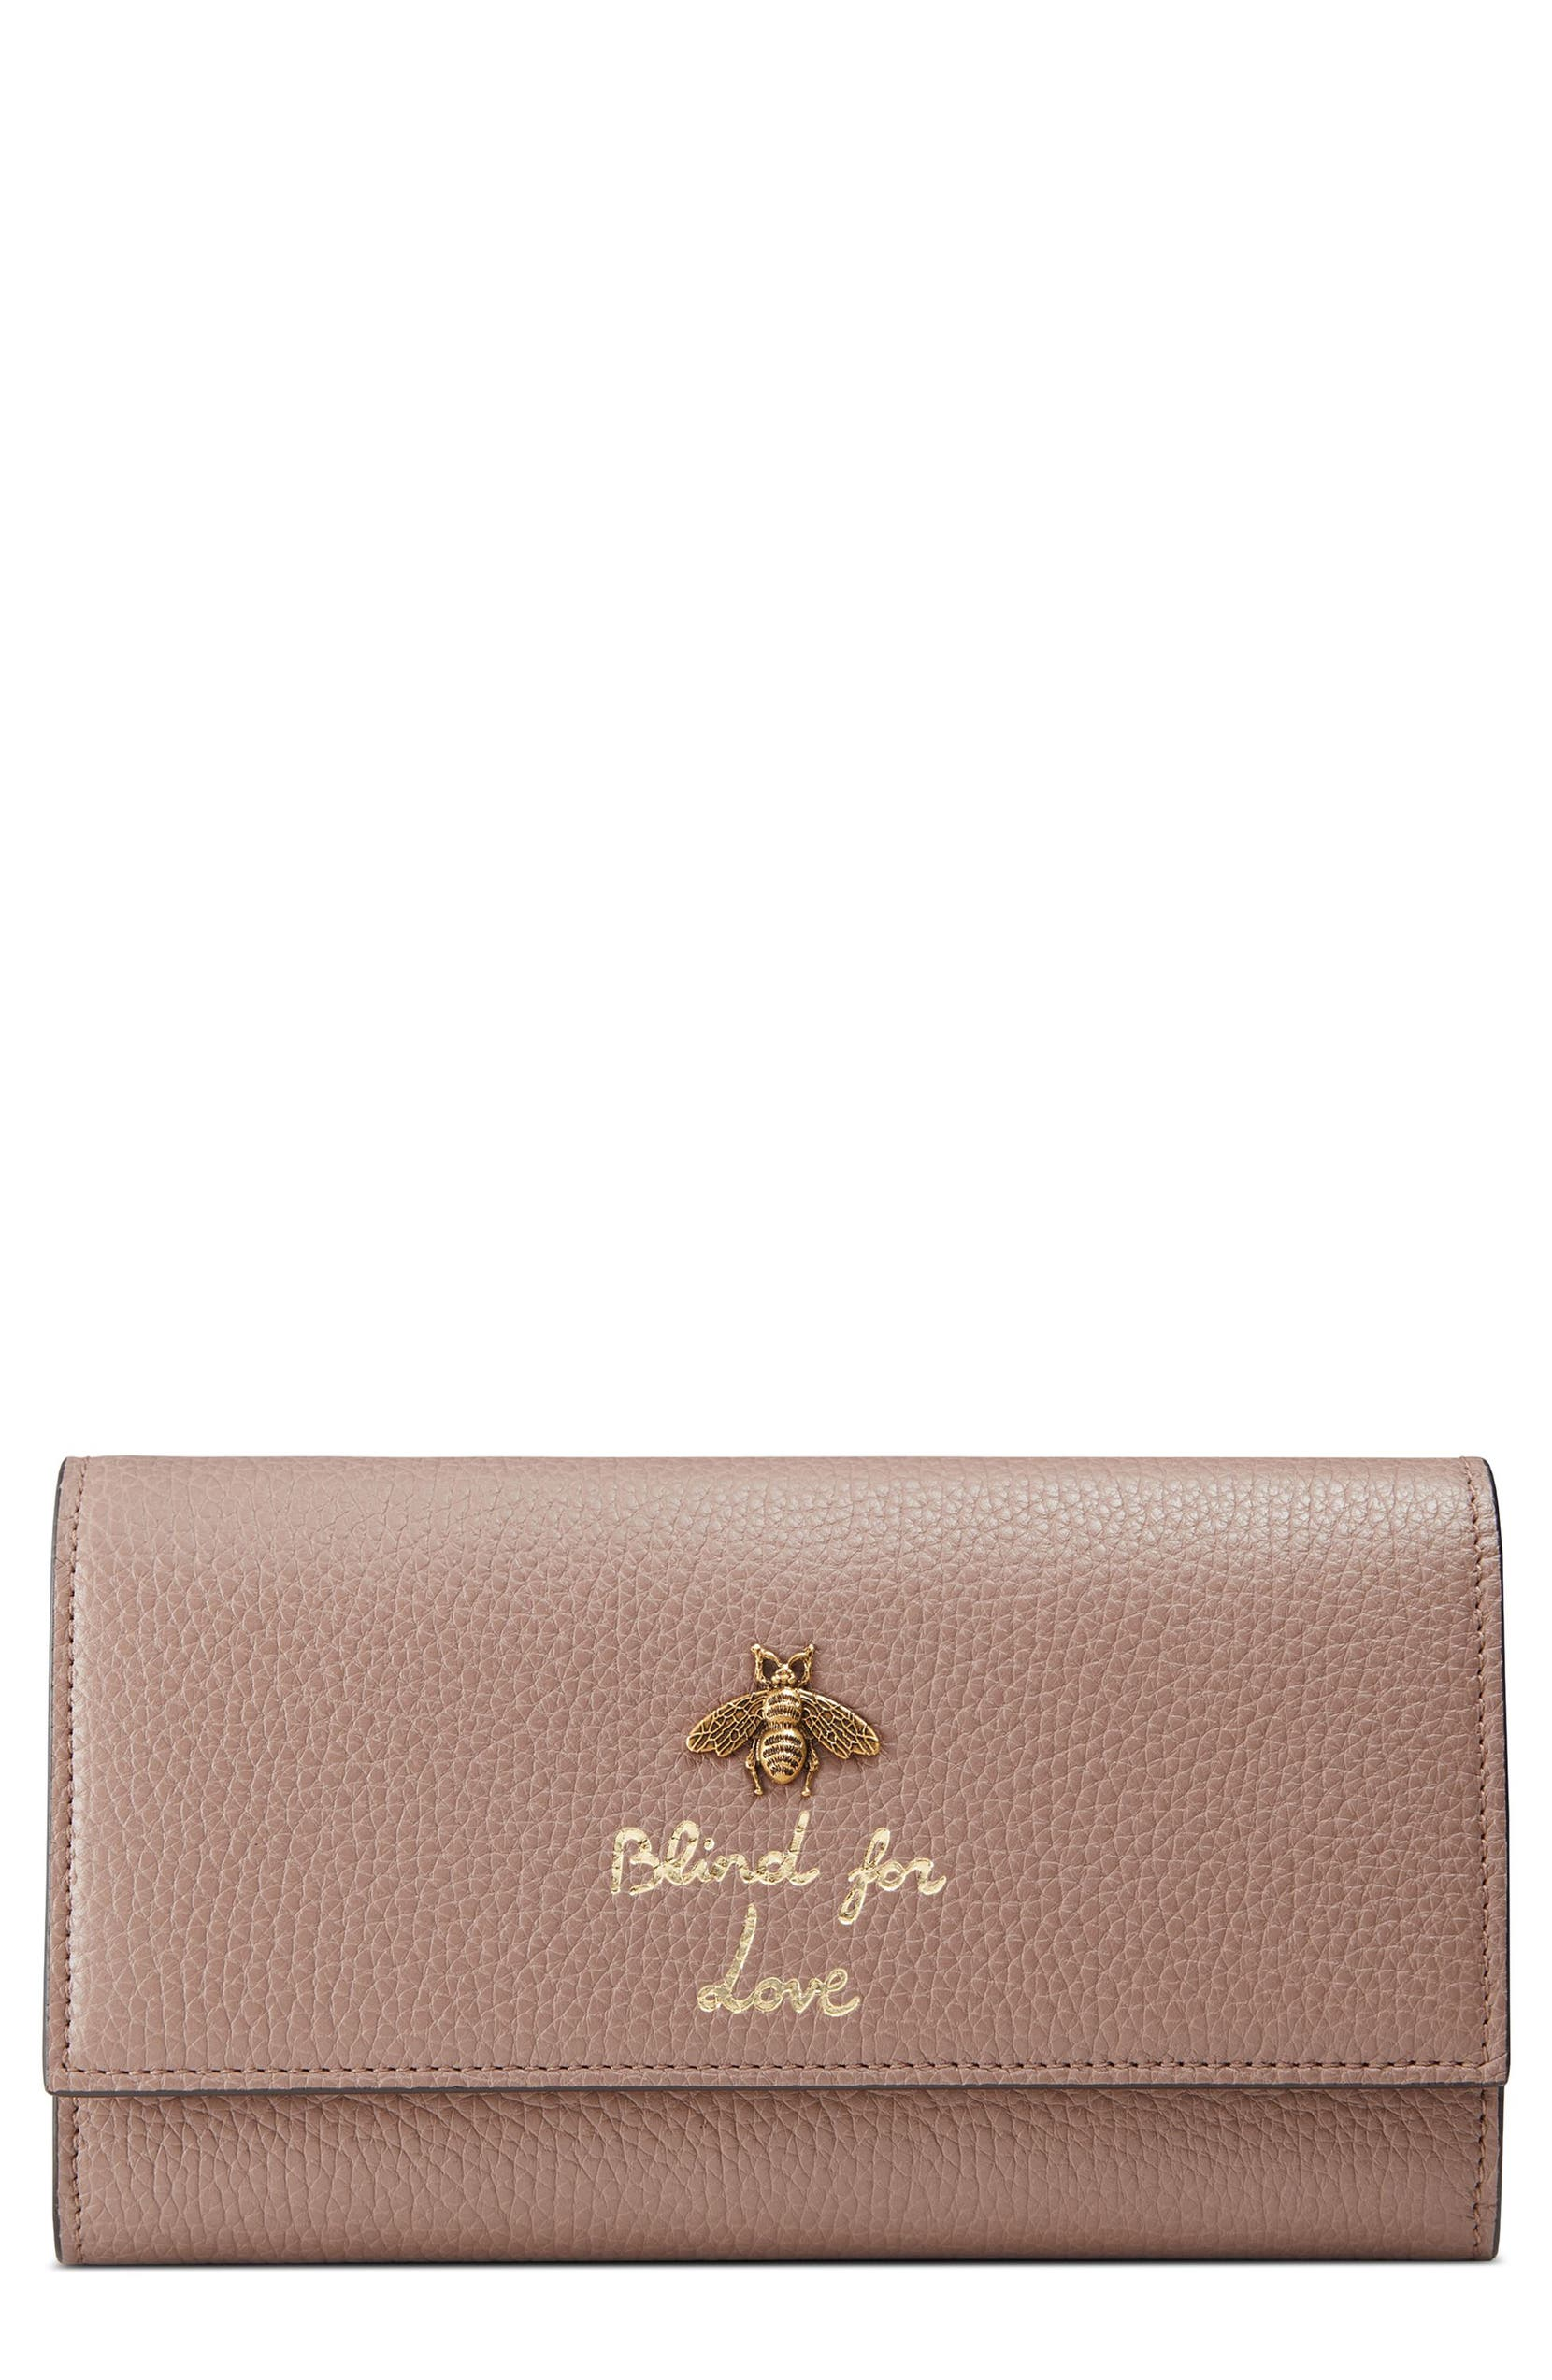 e79977c1ce78 Gucci Animalier Bee Leather Continental Wallet | Nordstrom